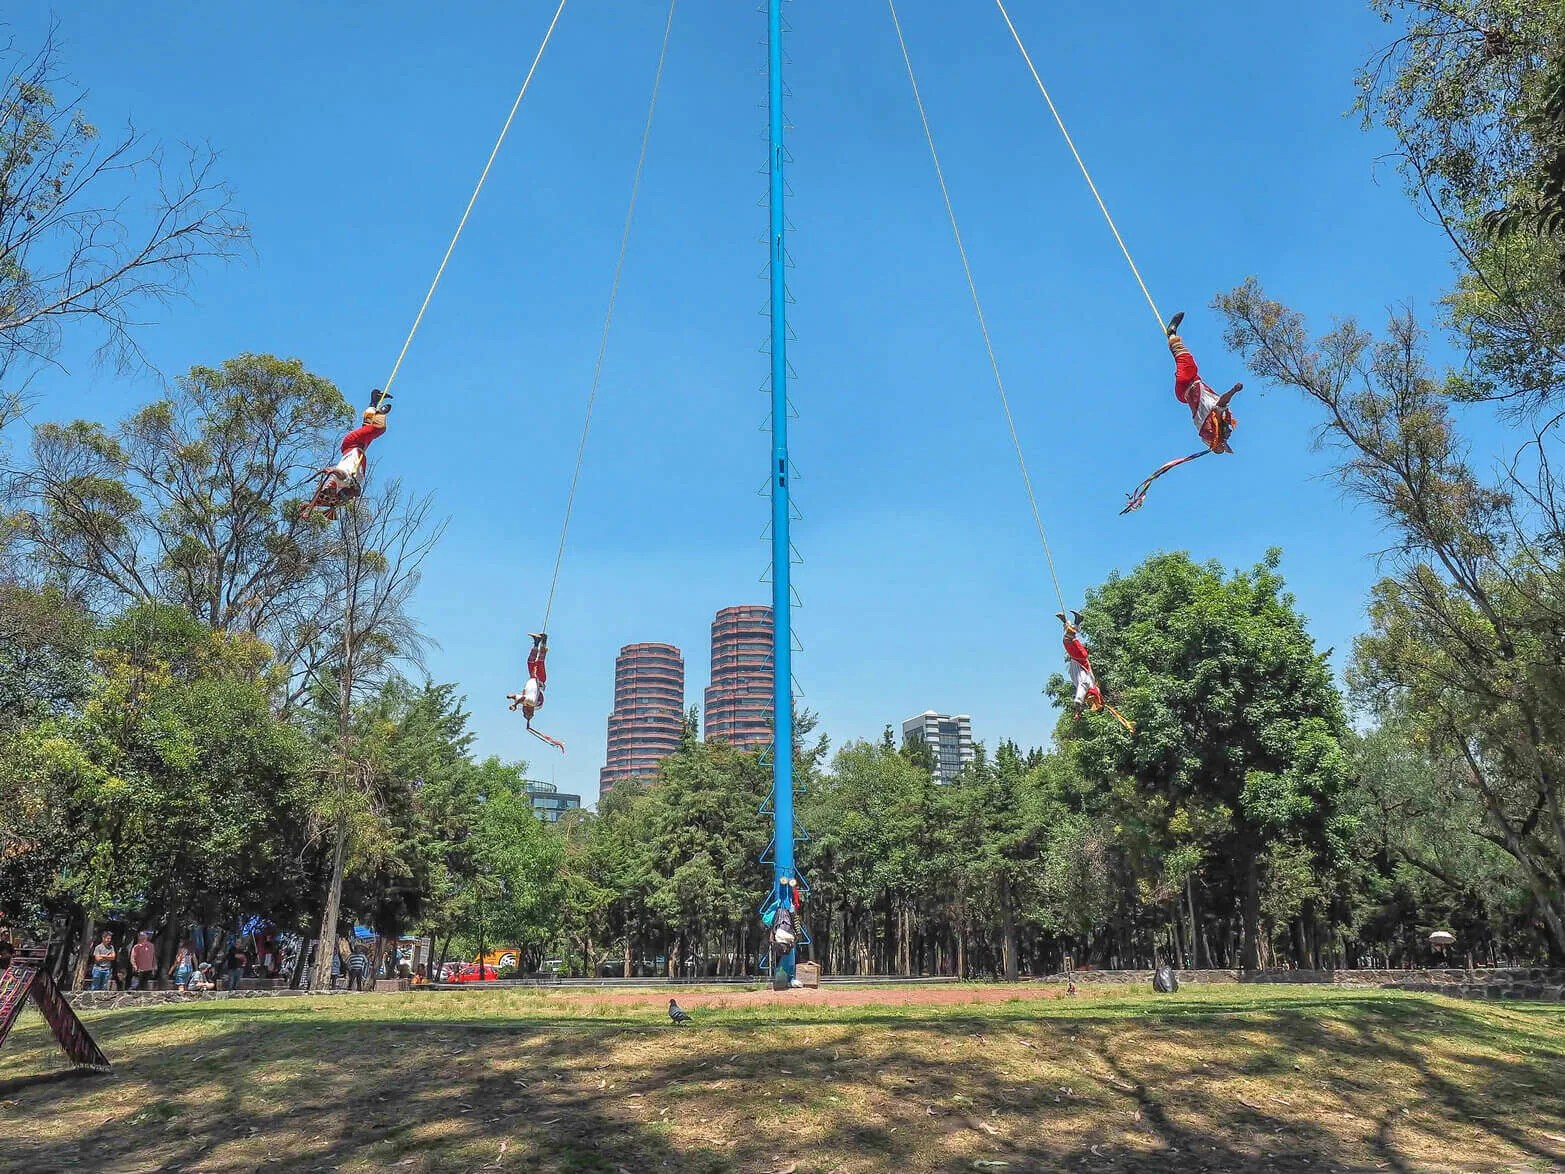 things to do in Mexico City, what to do in Mexico City, Mexico City attractions, visiting Mexico City, tourist attractions in Mexico City, Mexico City tourism